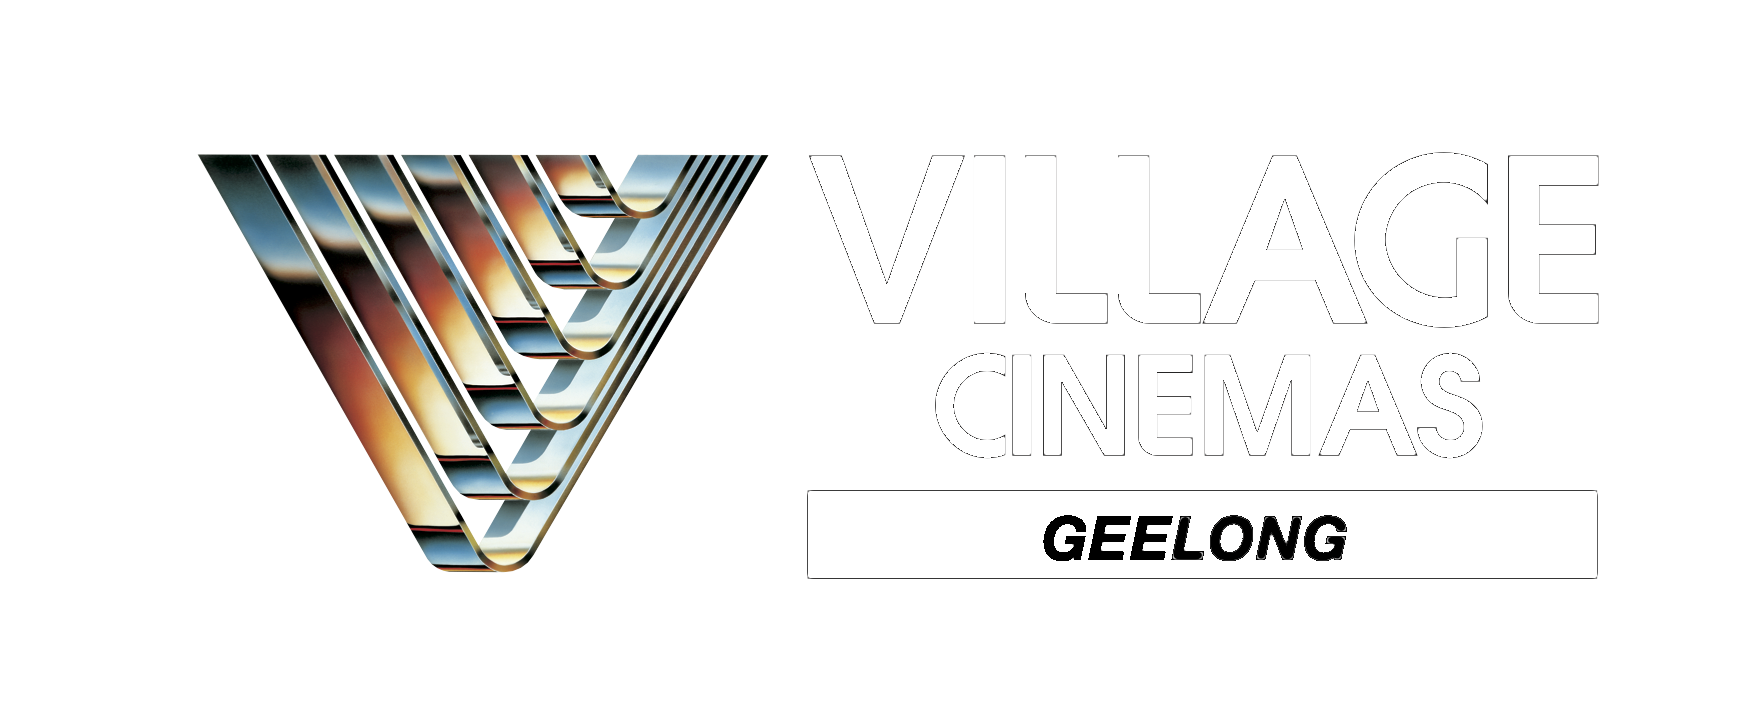 Village Cinemas Geelong logo